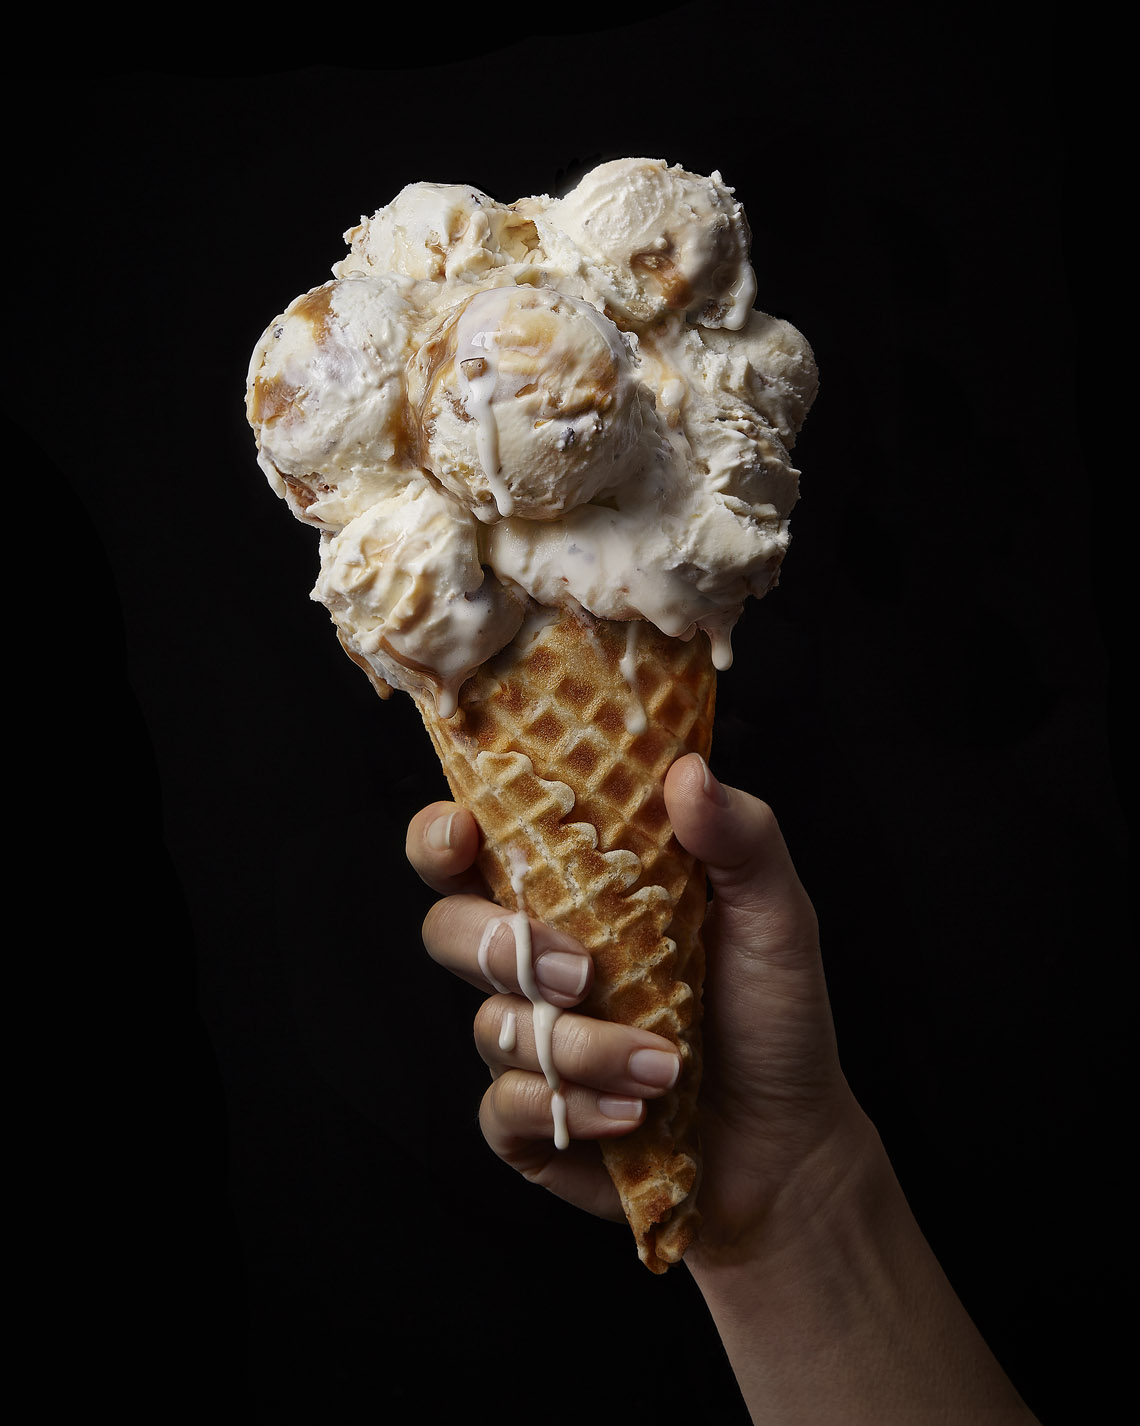 food stylist in San Francisco - Caramel toffee crunch ice cream cone Tillamook photographed by Sue Tallon Photographer